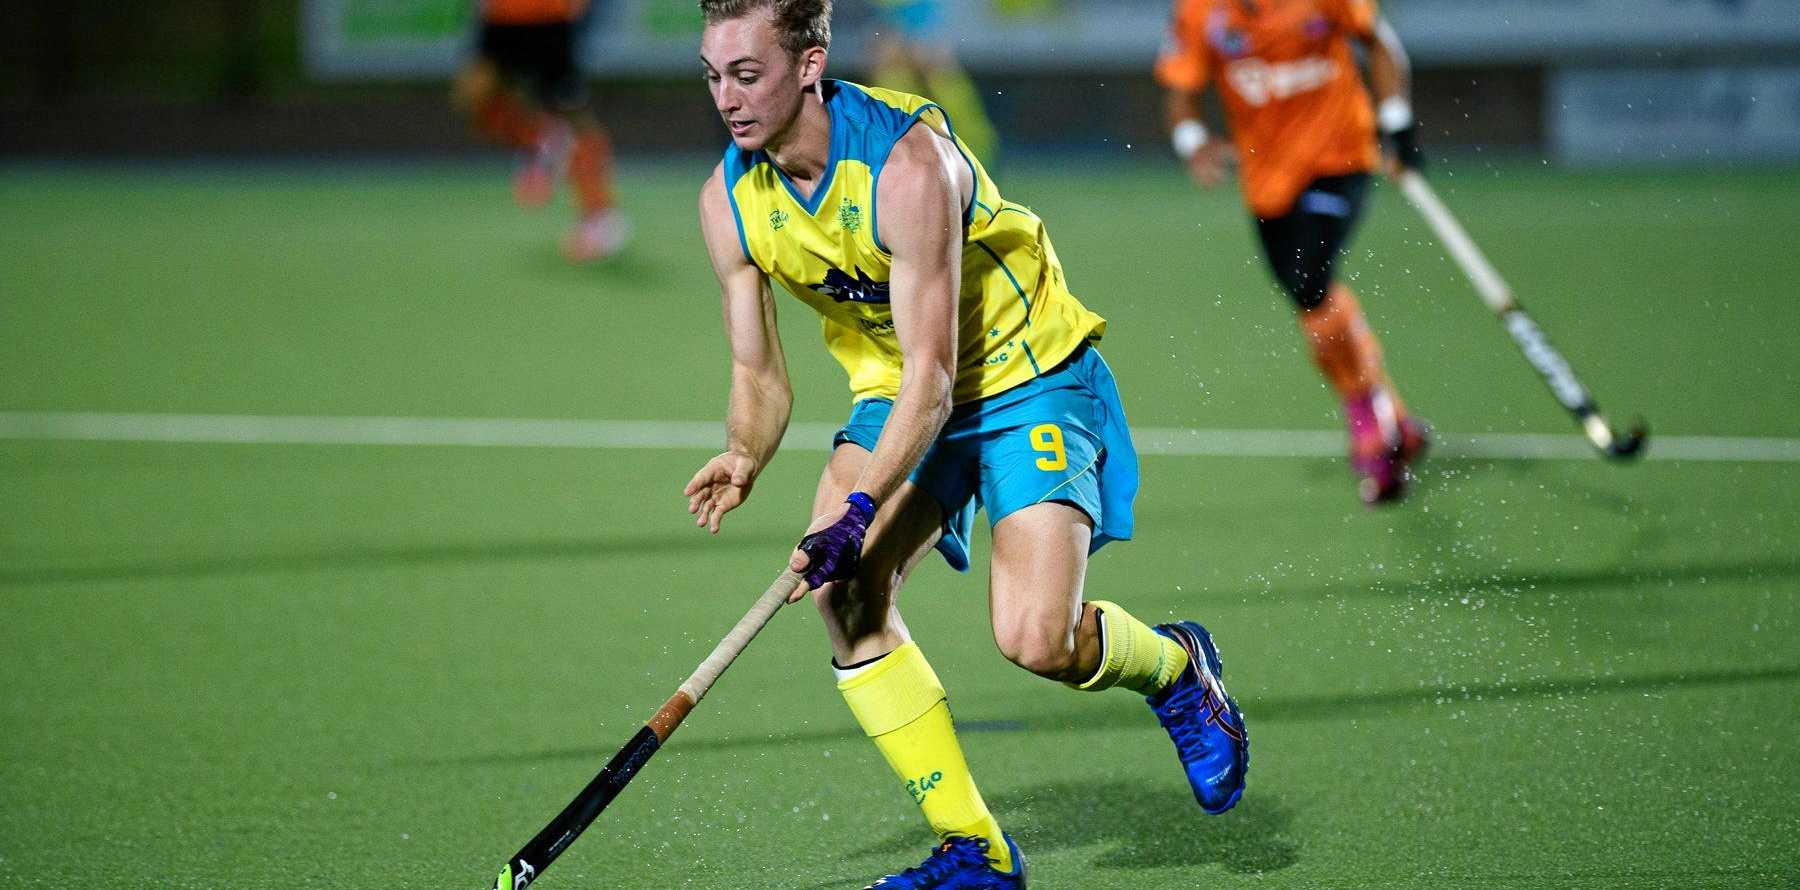 TALENT: Jacob Anderson playing for Australia.